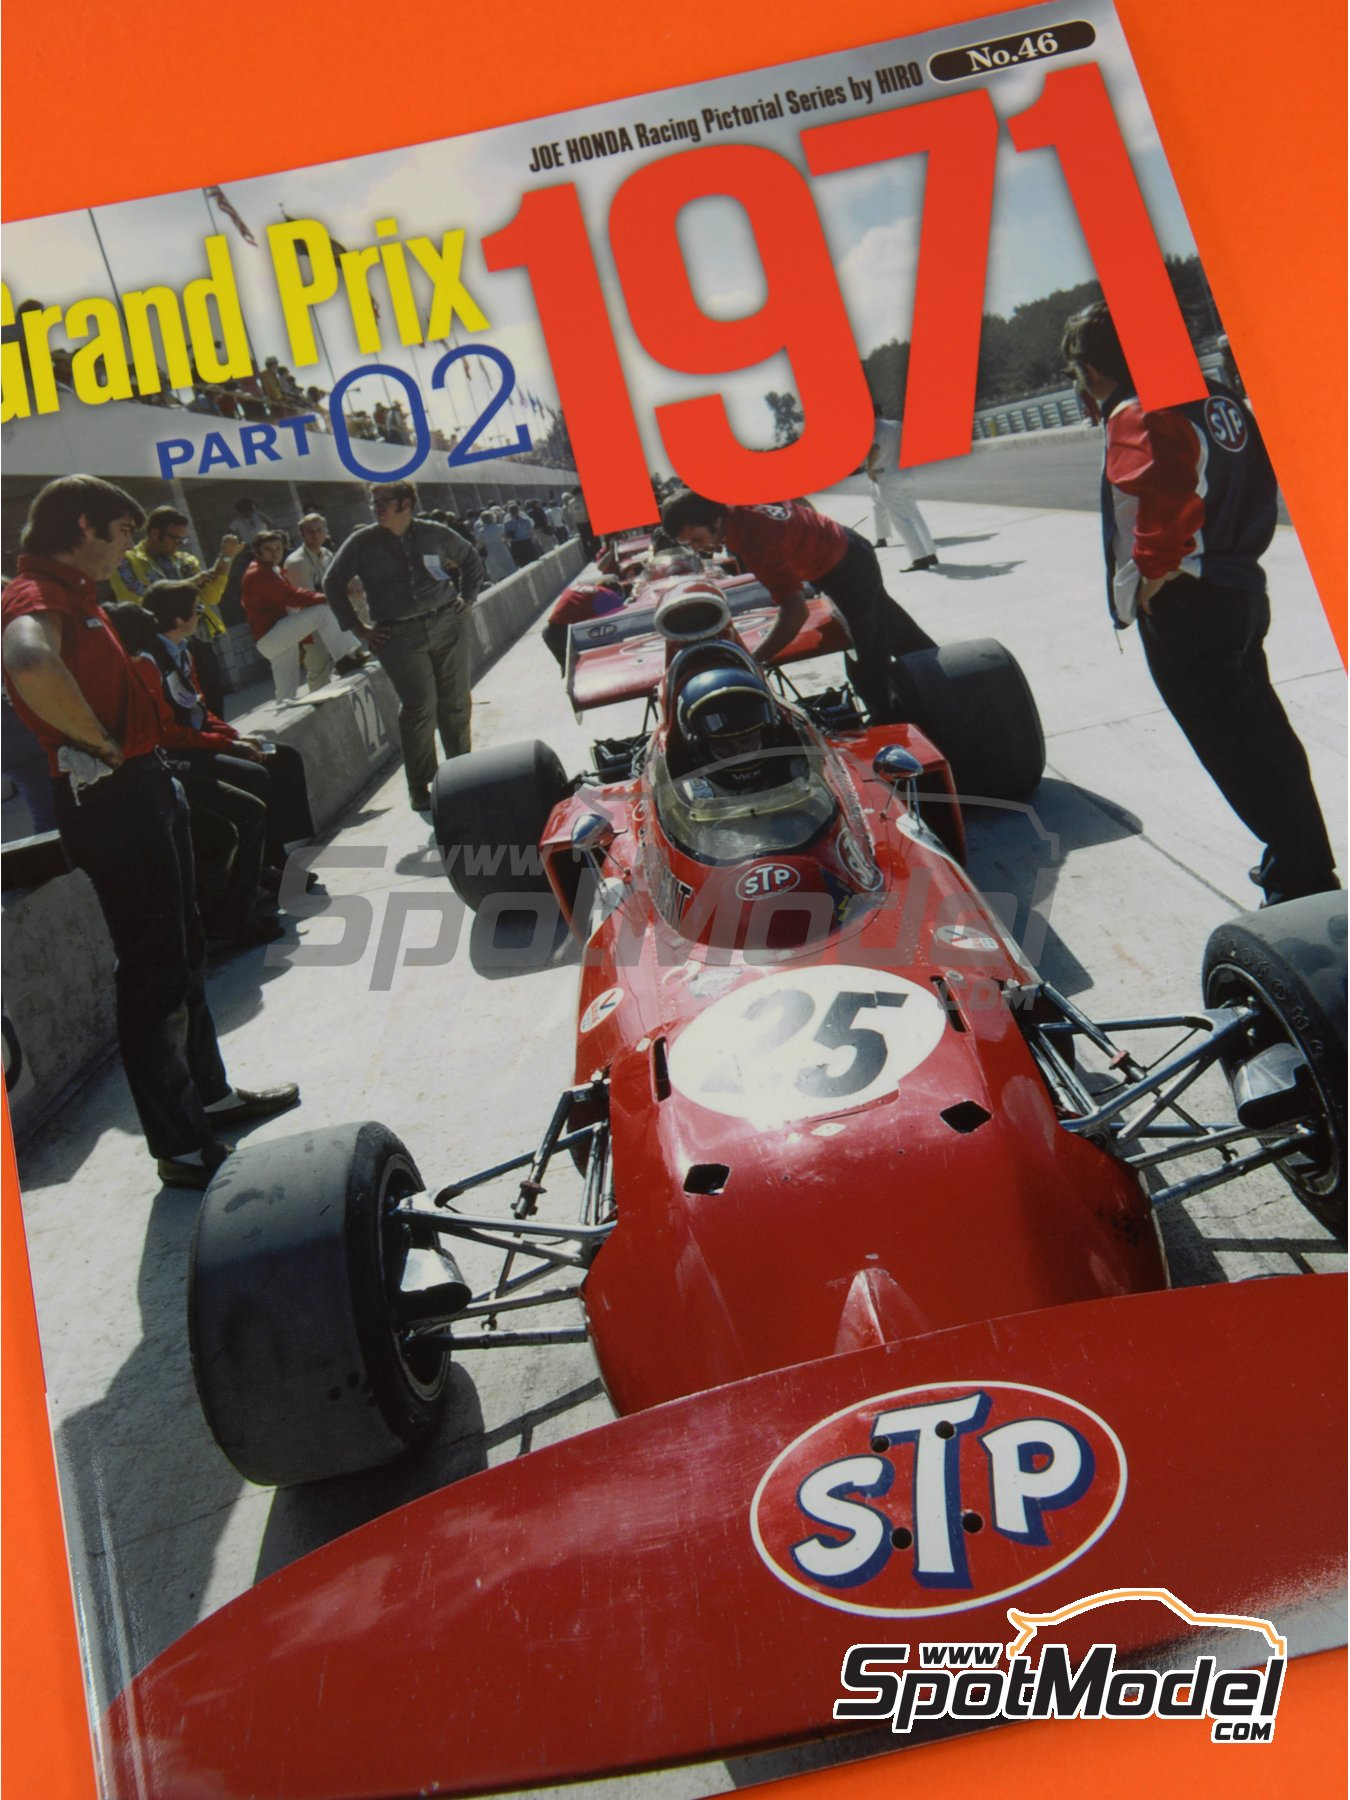 Joe Honda Racing Pictorial Series: Grand Prix, parte 2 -  1971 | Libro de referencia fabricado por Model Factory Hiro (ref. MFH-JH46) image